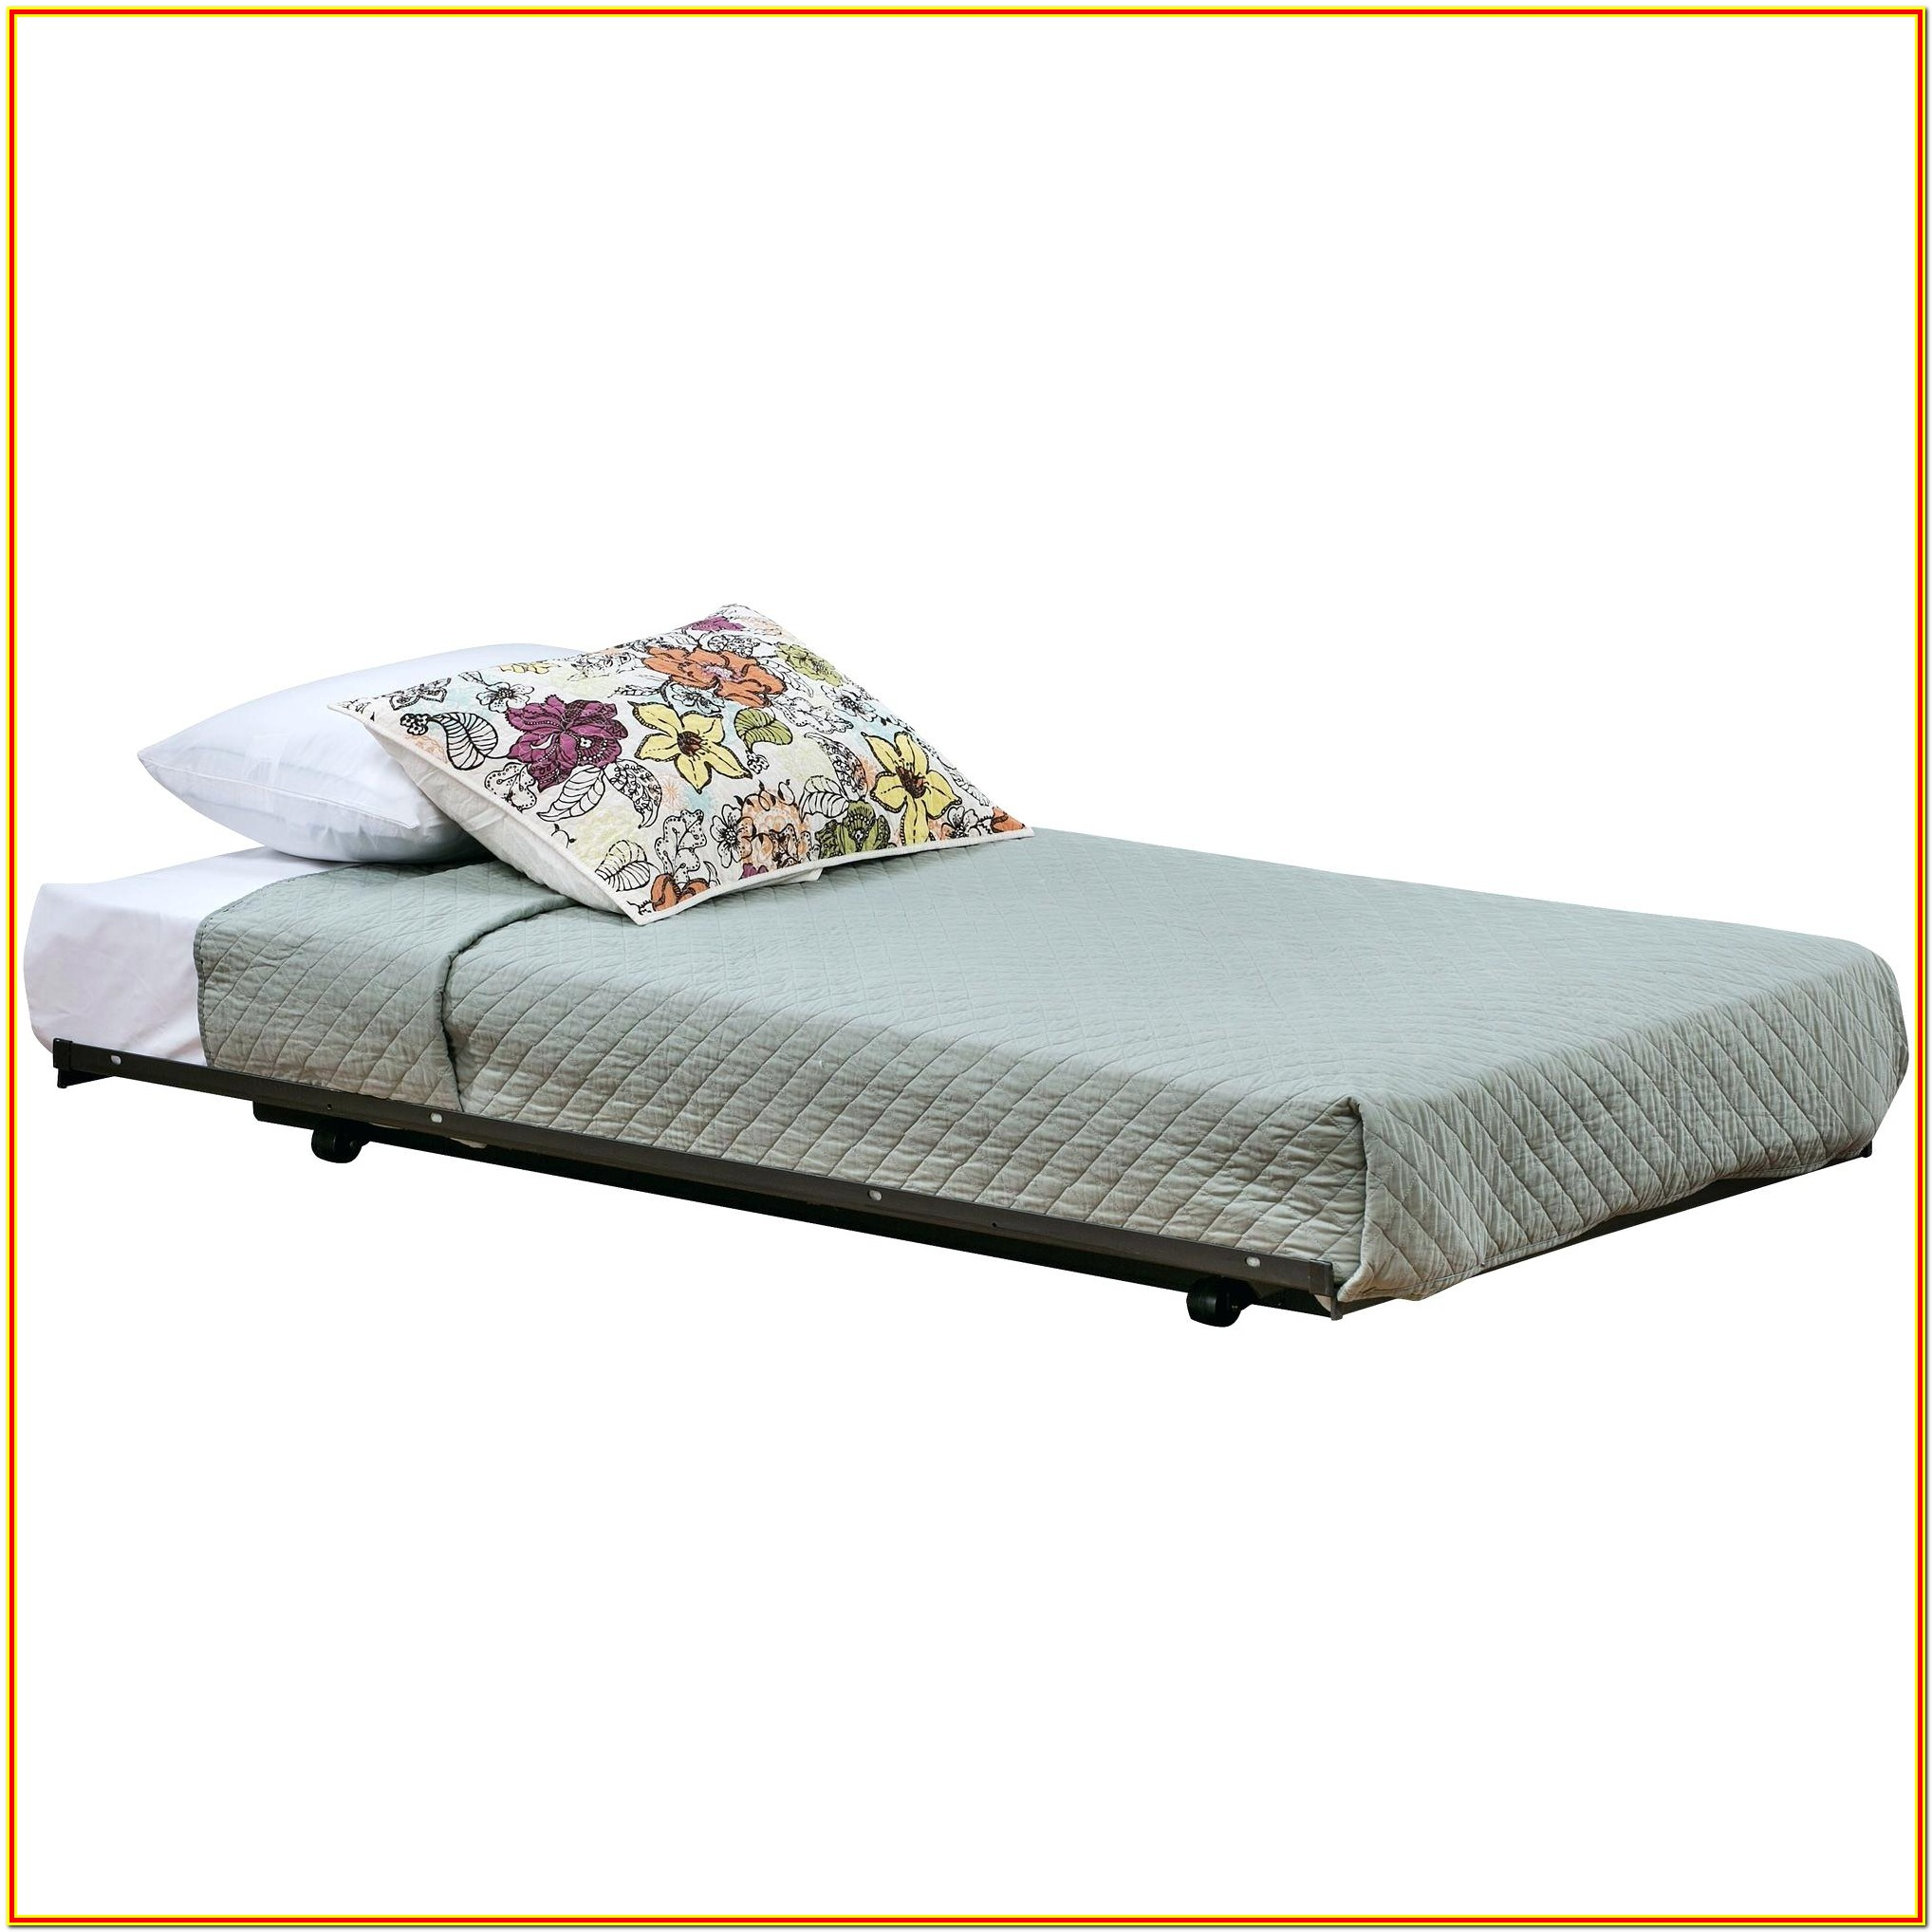 Sears Pop Up Trundle Bed Frame